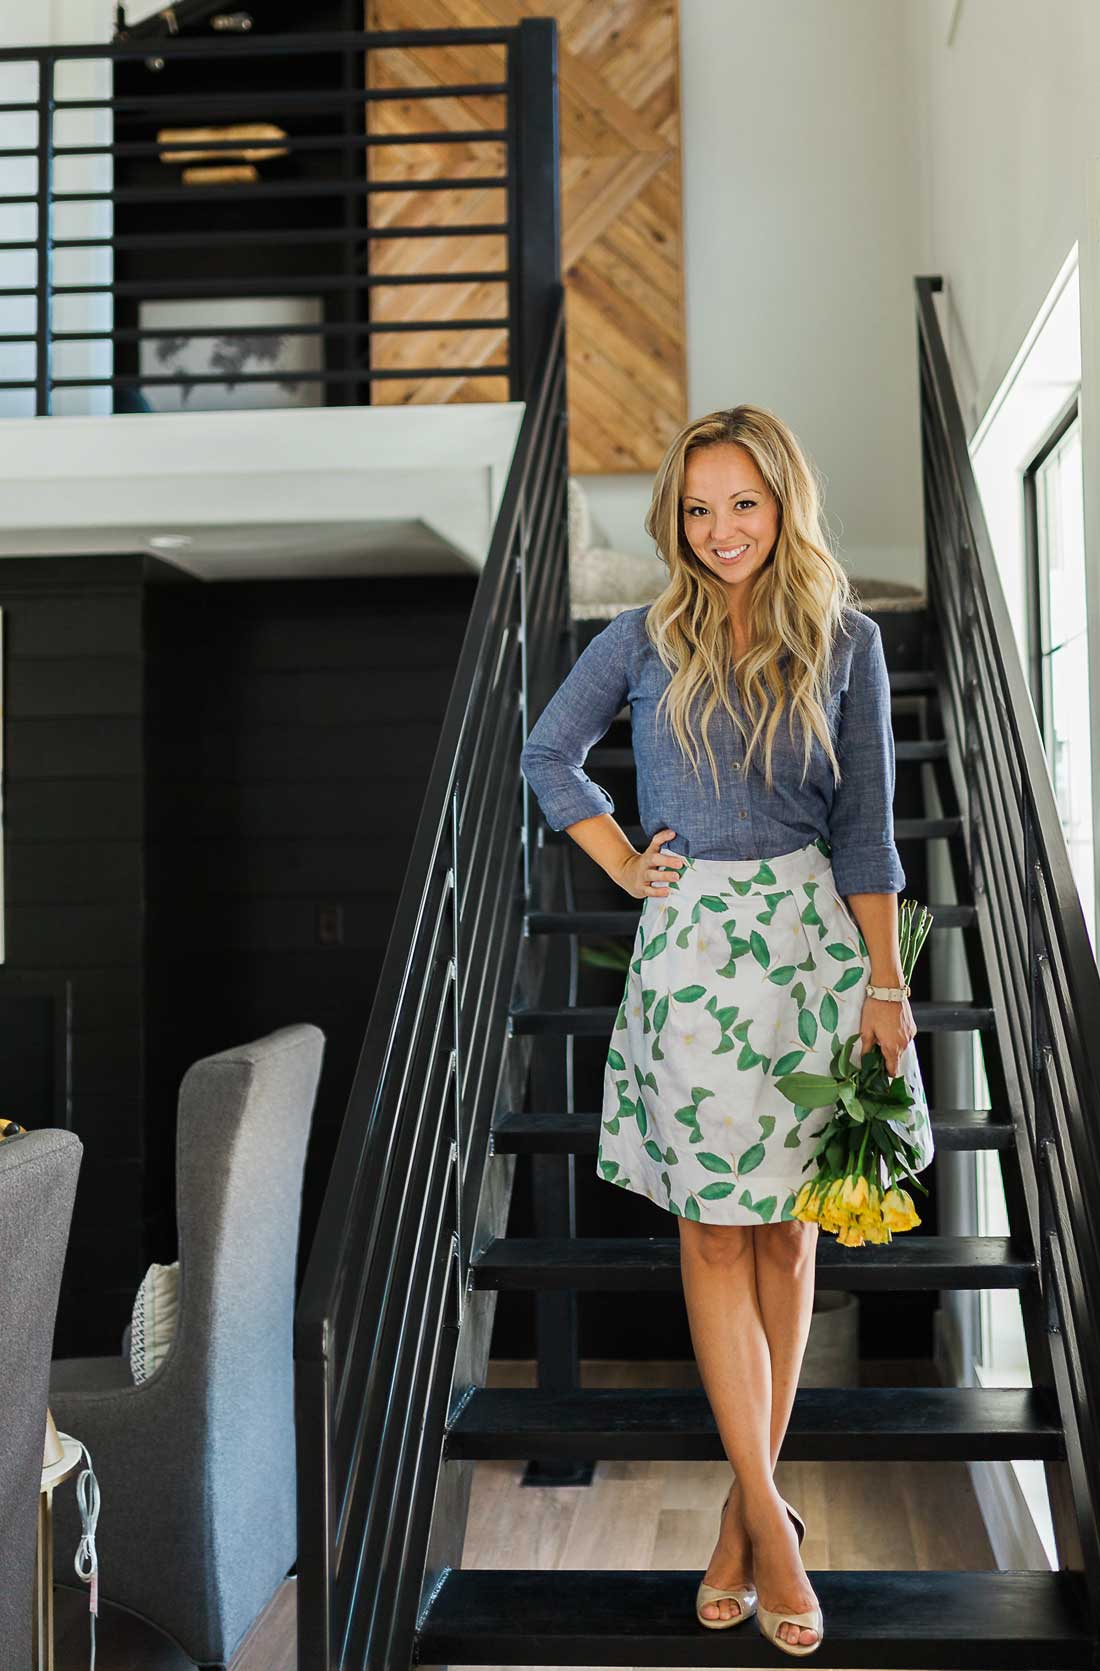 Flirting with Flavor wearing a Skye LeFevre skirt in a Brandon Whatley Home's living area.